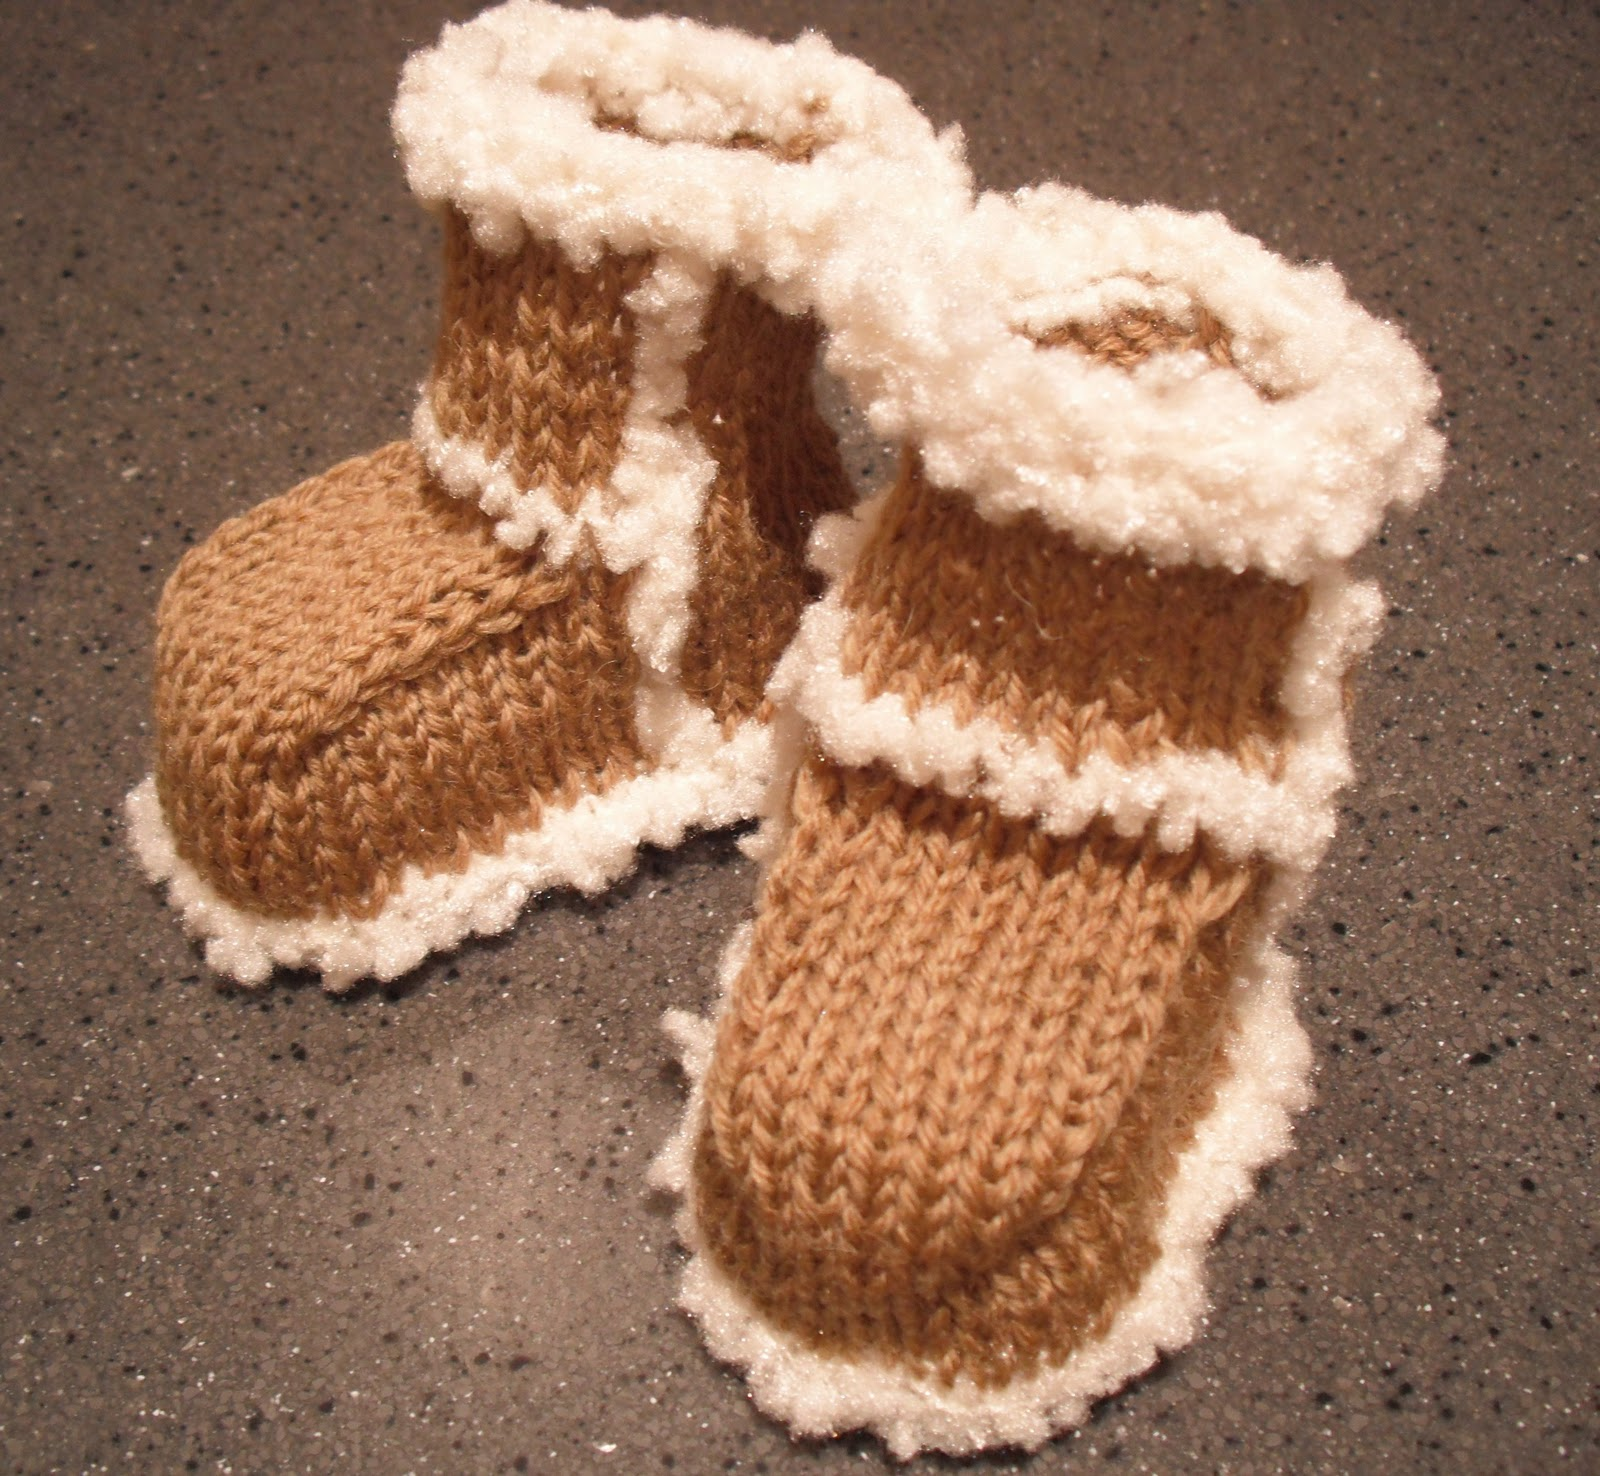 Knitting Patterns Baby Booties Ugg images